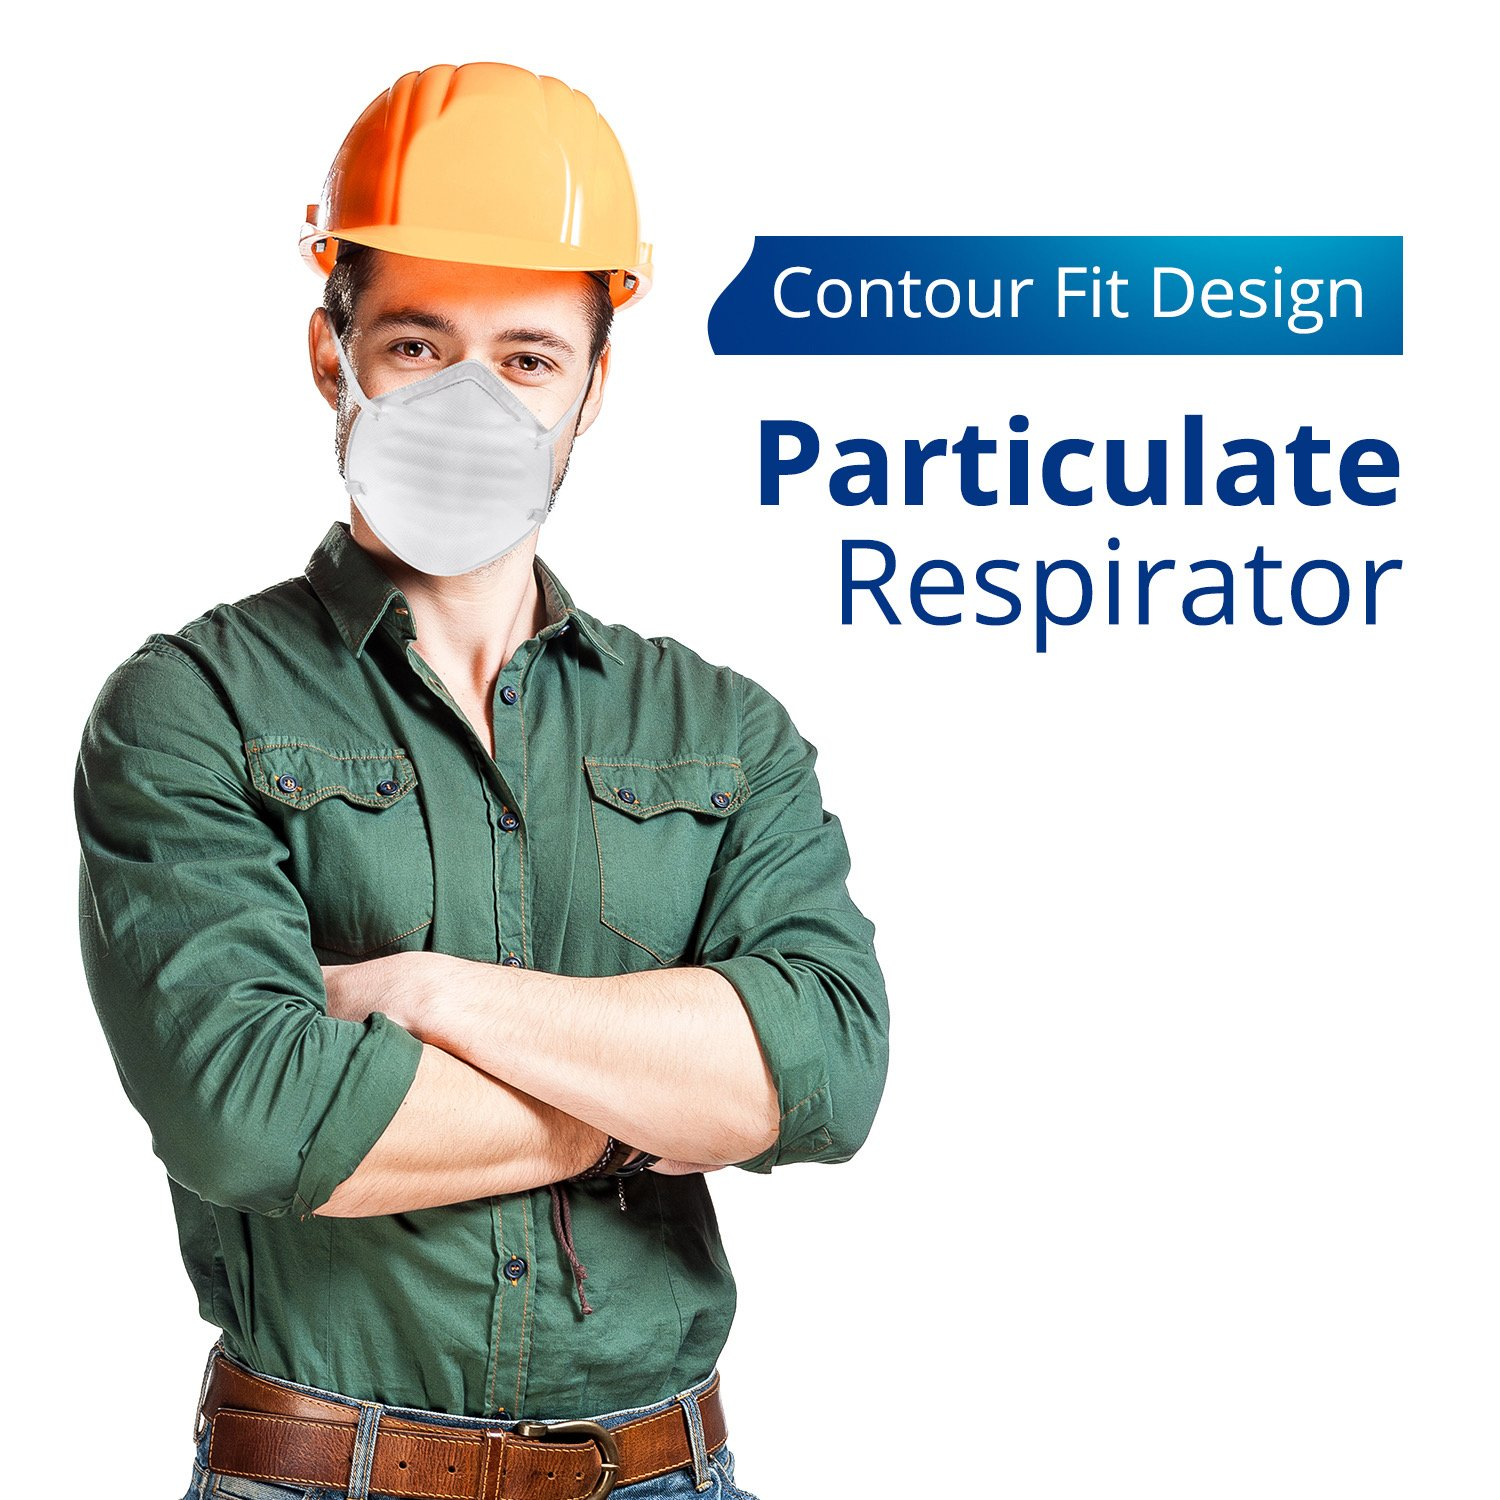 Disposable Dust Masks for face - NIOSH Certified - Safety N95 Particulate Respirator Mask (20 pack) by Protect Life (Image #3)